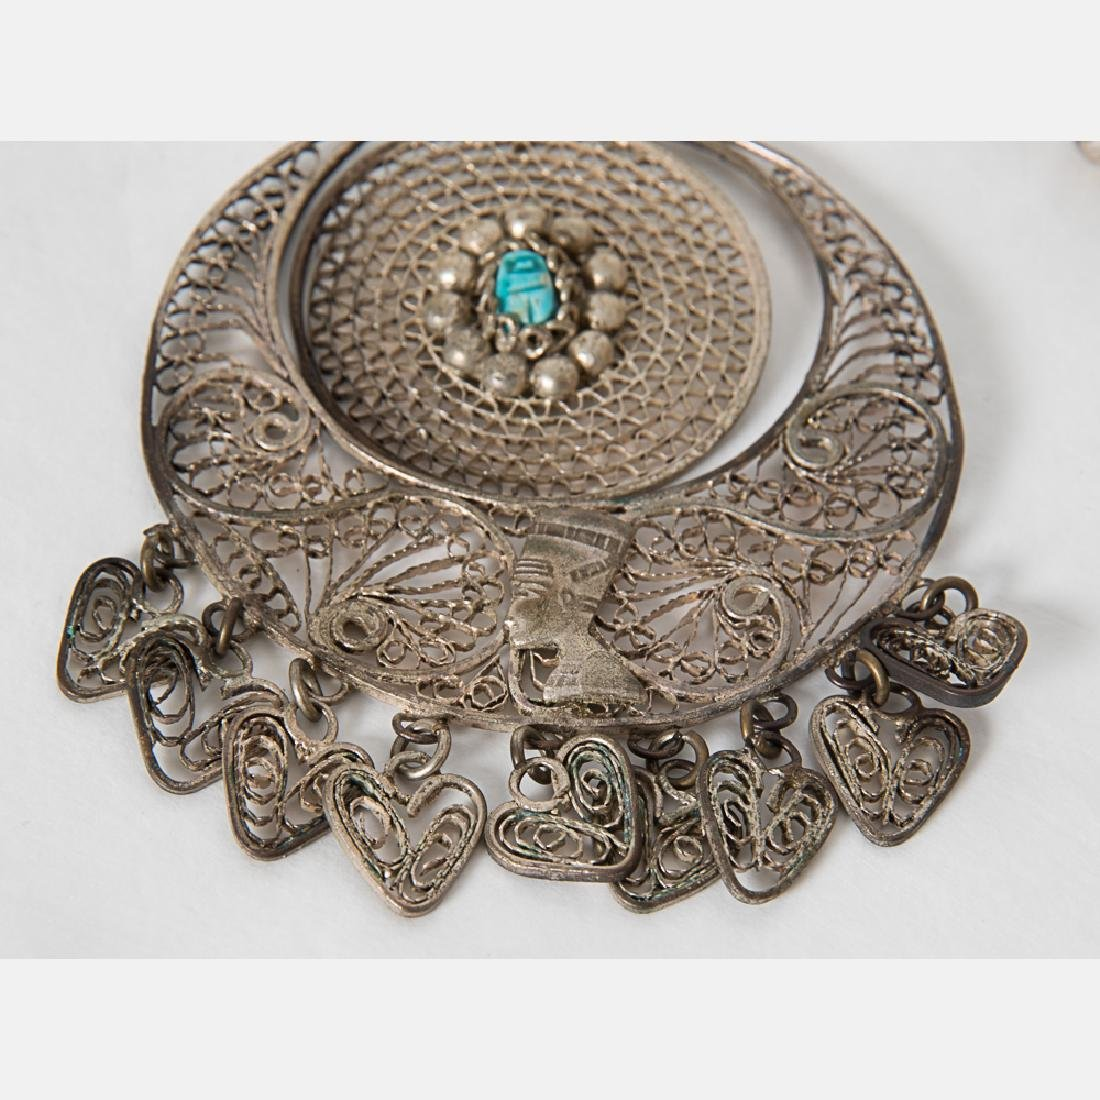 A Collection of Egyptian and Middle Eastern Decorative - 5